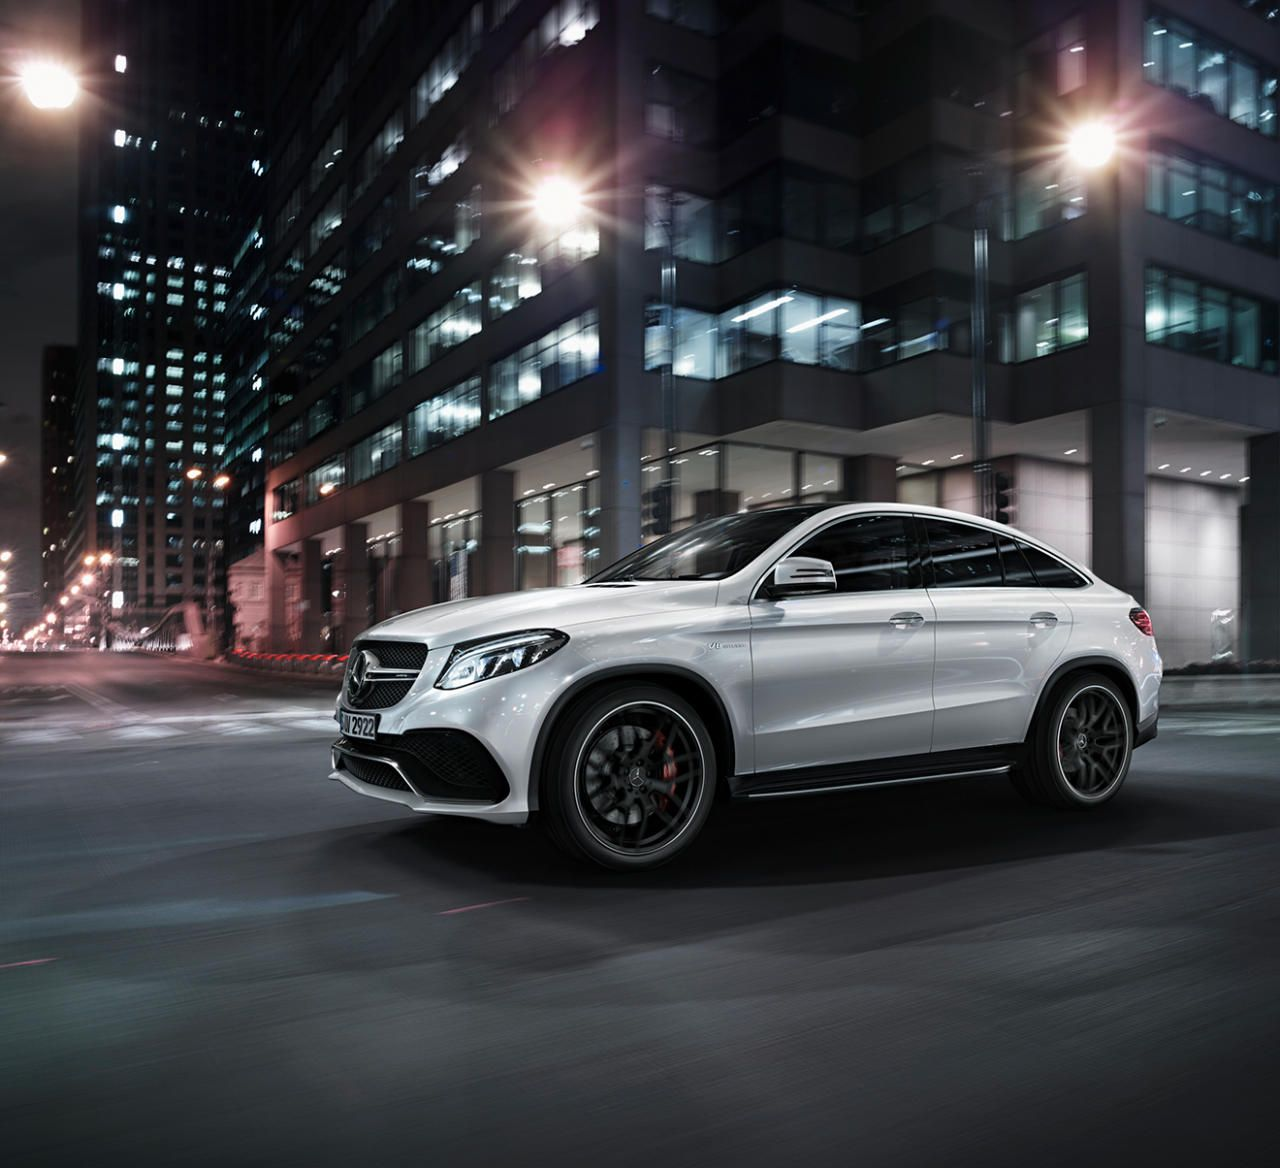 The New Mercedes-AMG GLE 63 Coupé. (With Images)